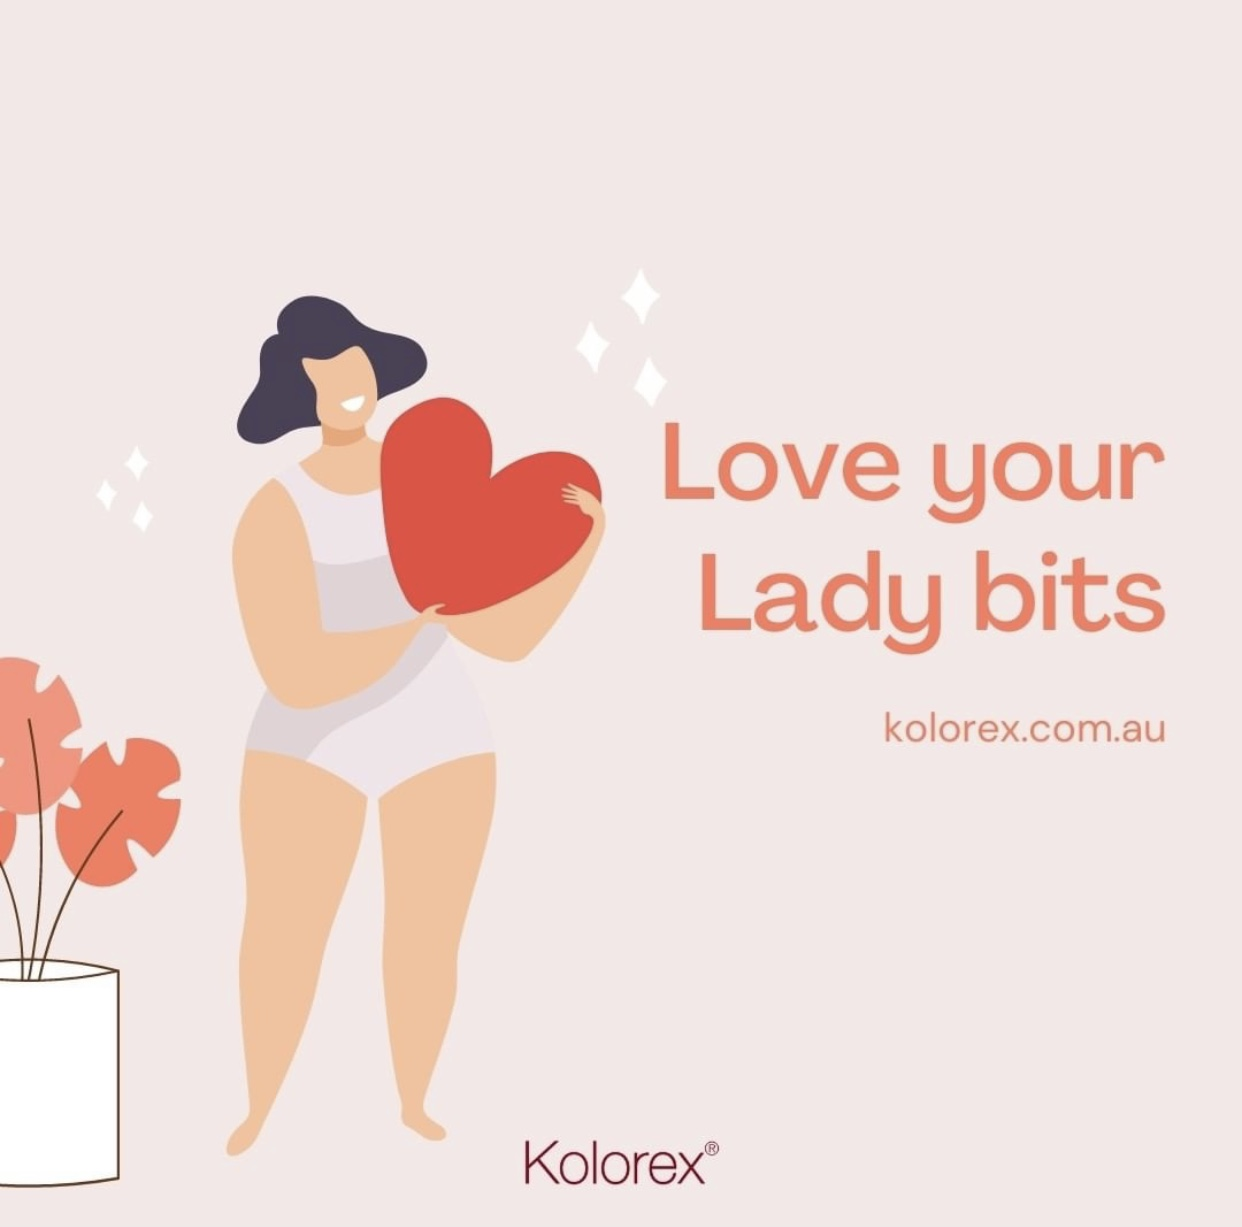 Join the movement to #LoveYourLadyBits!  Image